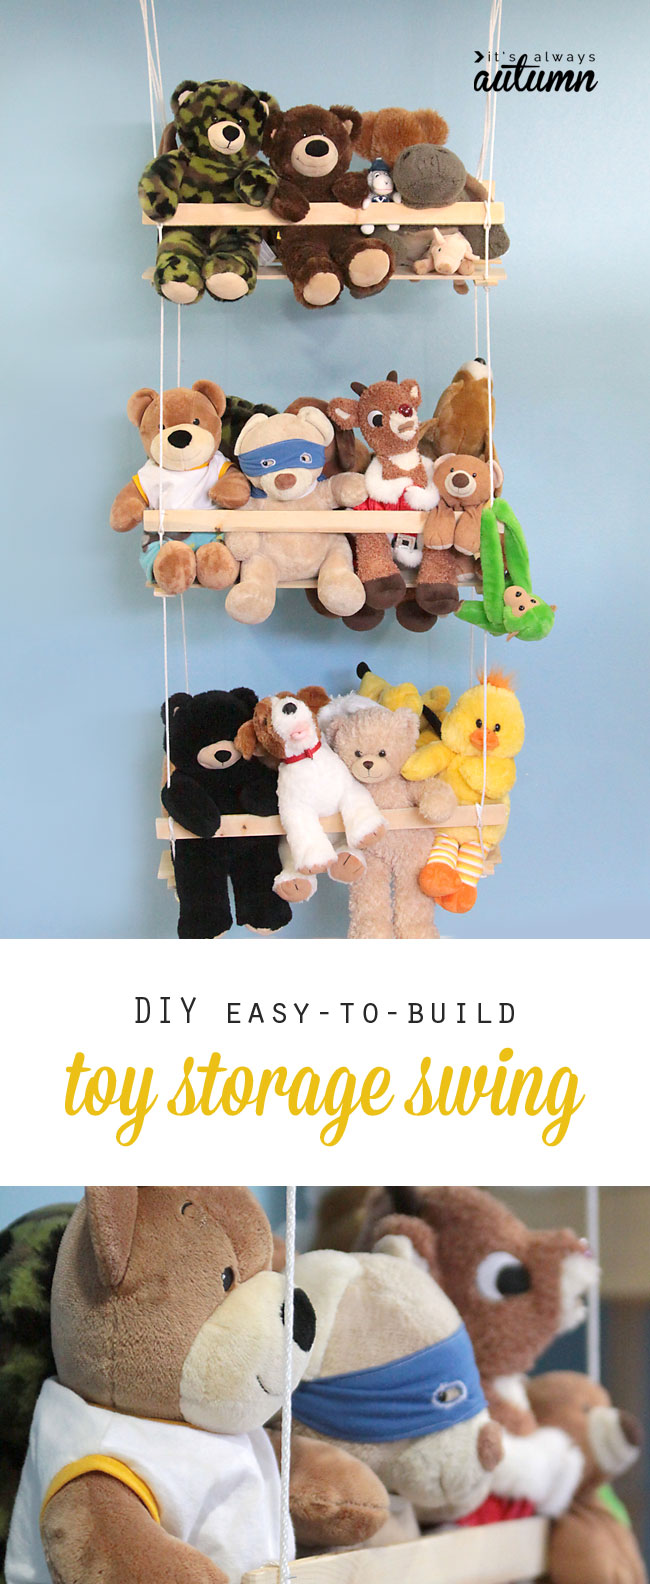 Diy Hanging Toy Storage To Organize The Stuffed Animals It S